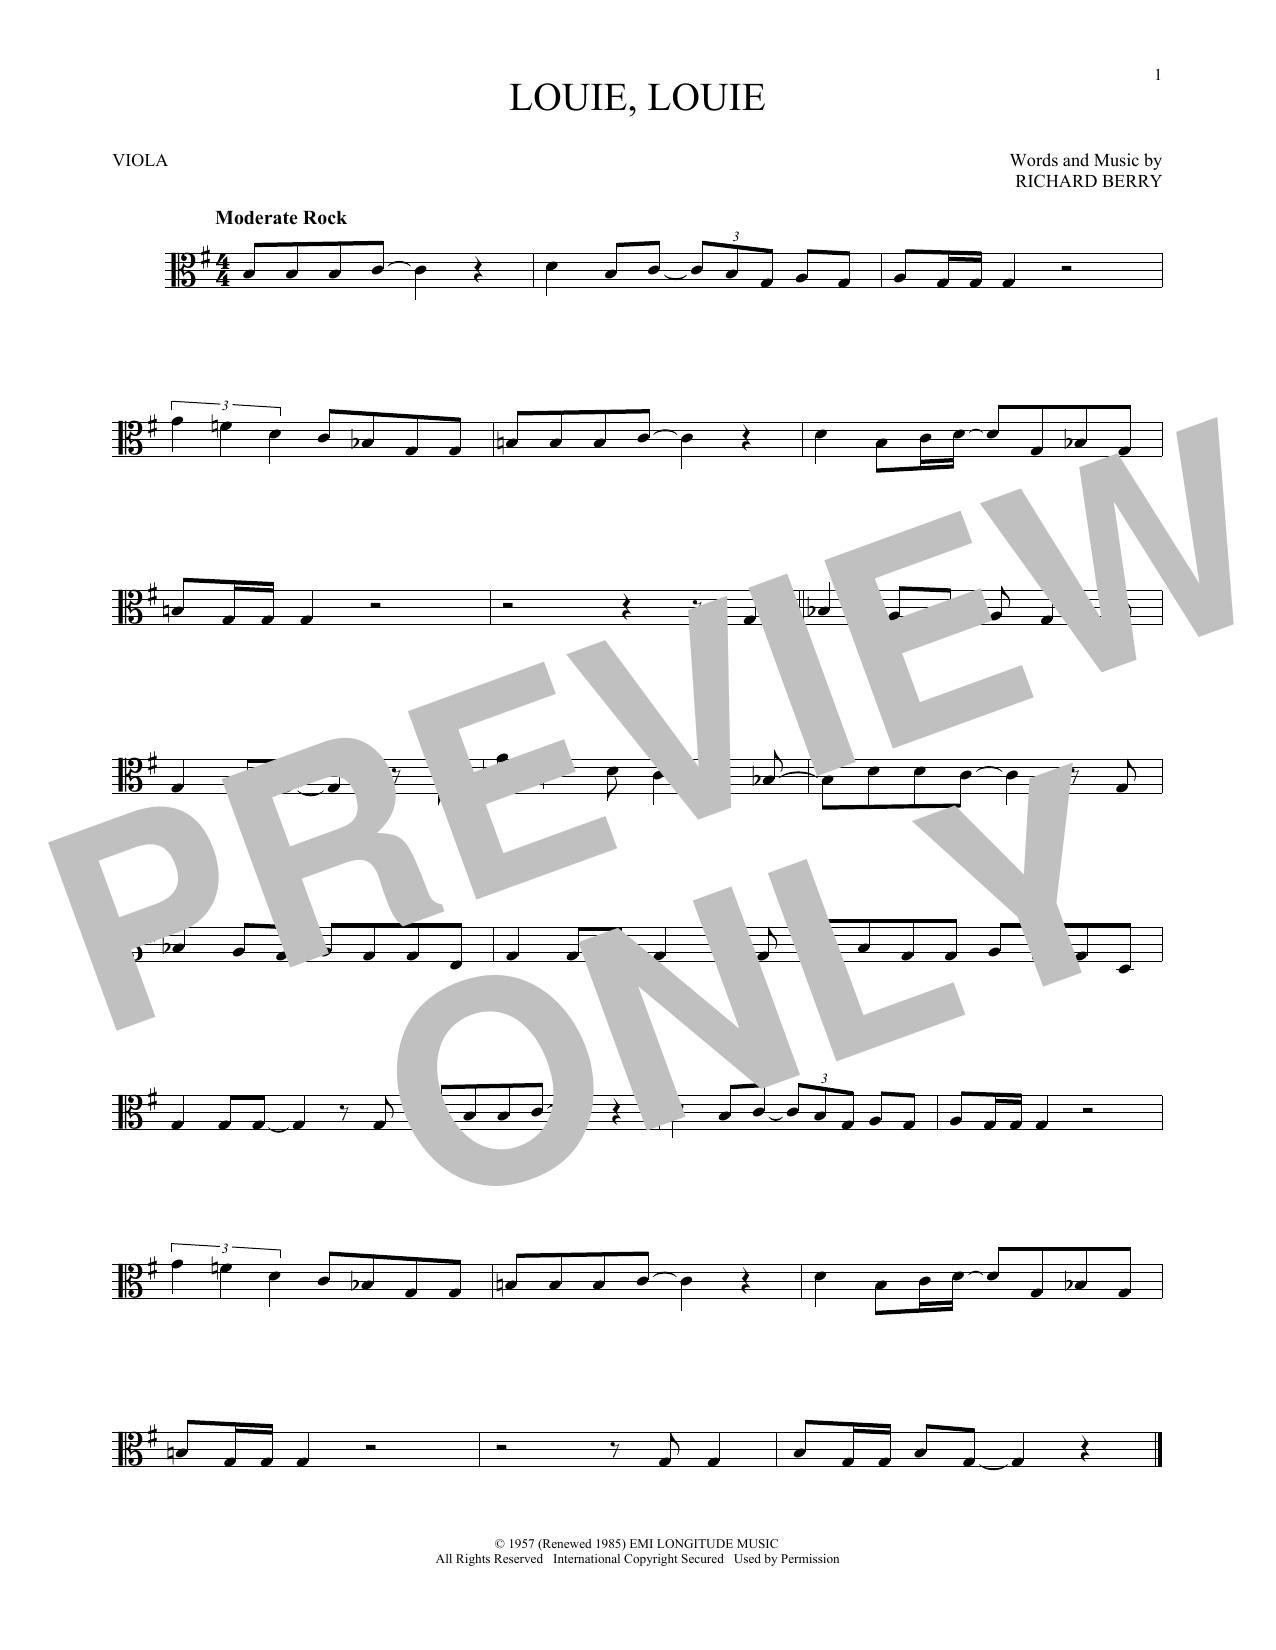 Kingsmen Louie, Louie sheet music notes and chords. Download Printable PDF.